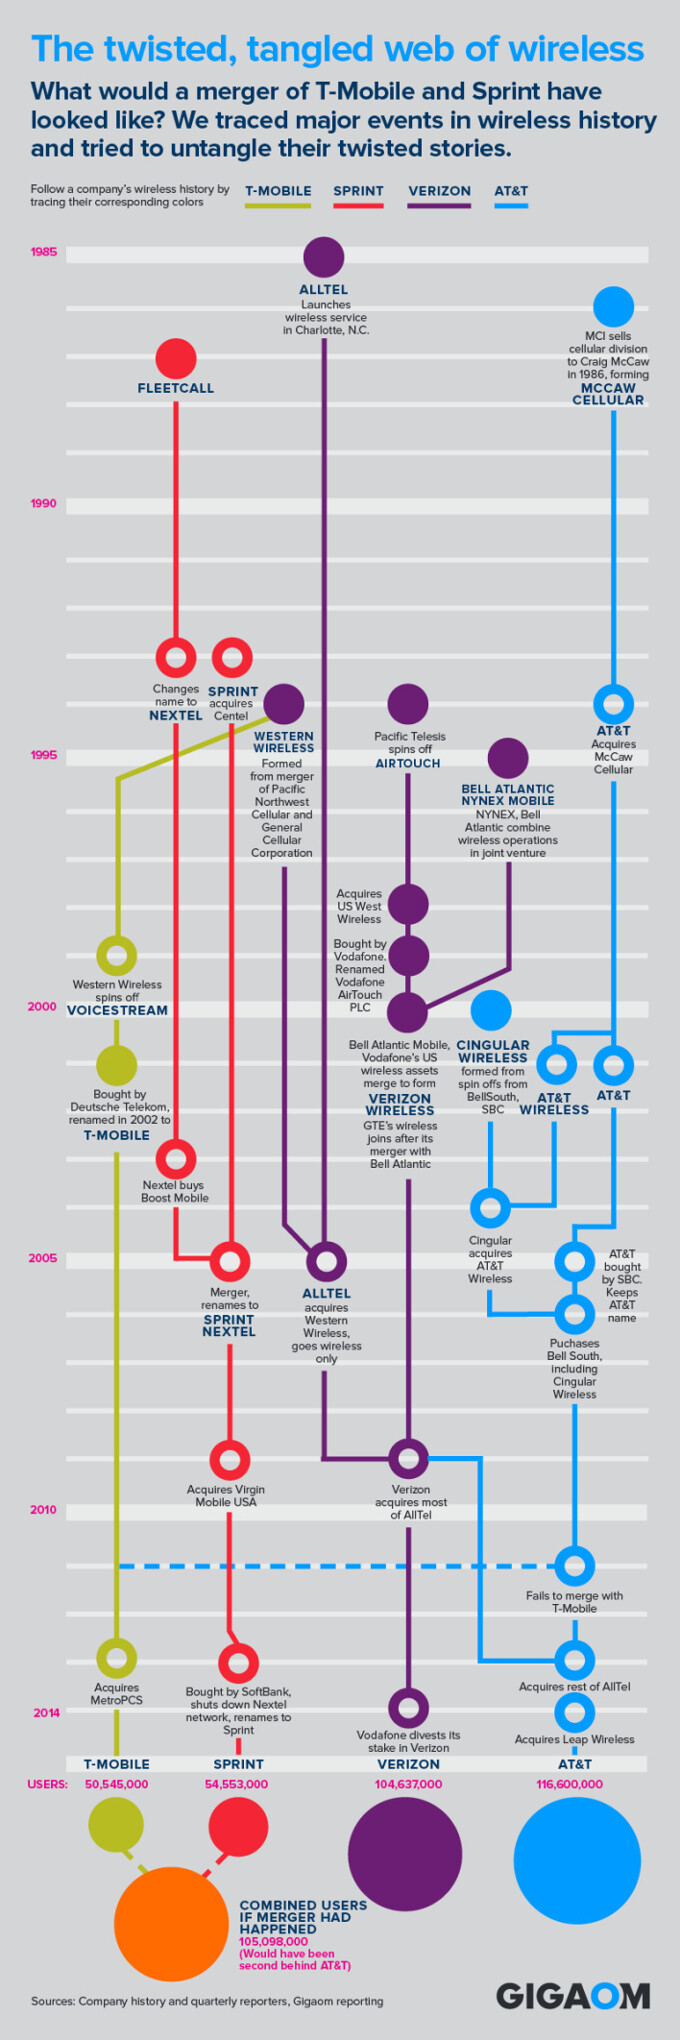 The history of U.S. carriers visualized, or how we settled on the big four: AT&T, Verizon, Sprint, and T-Mobile